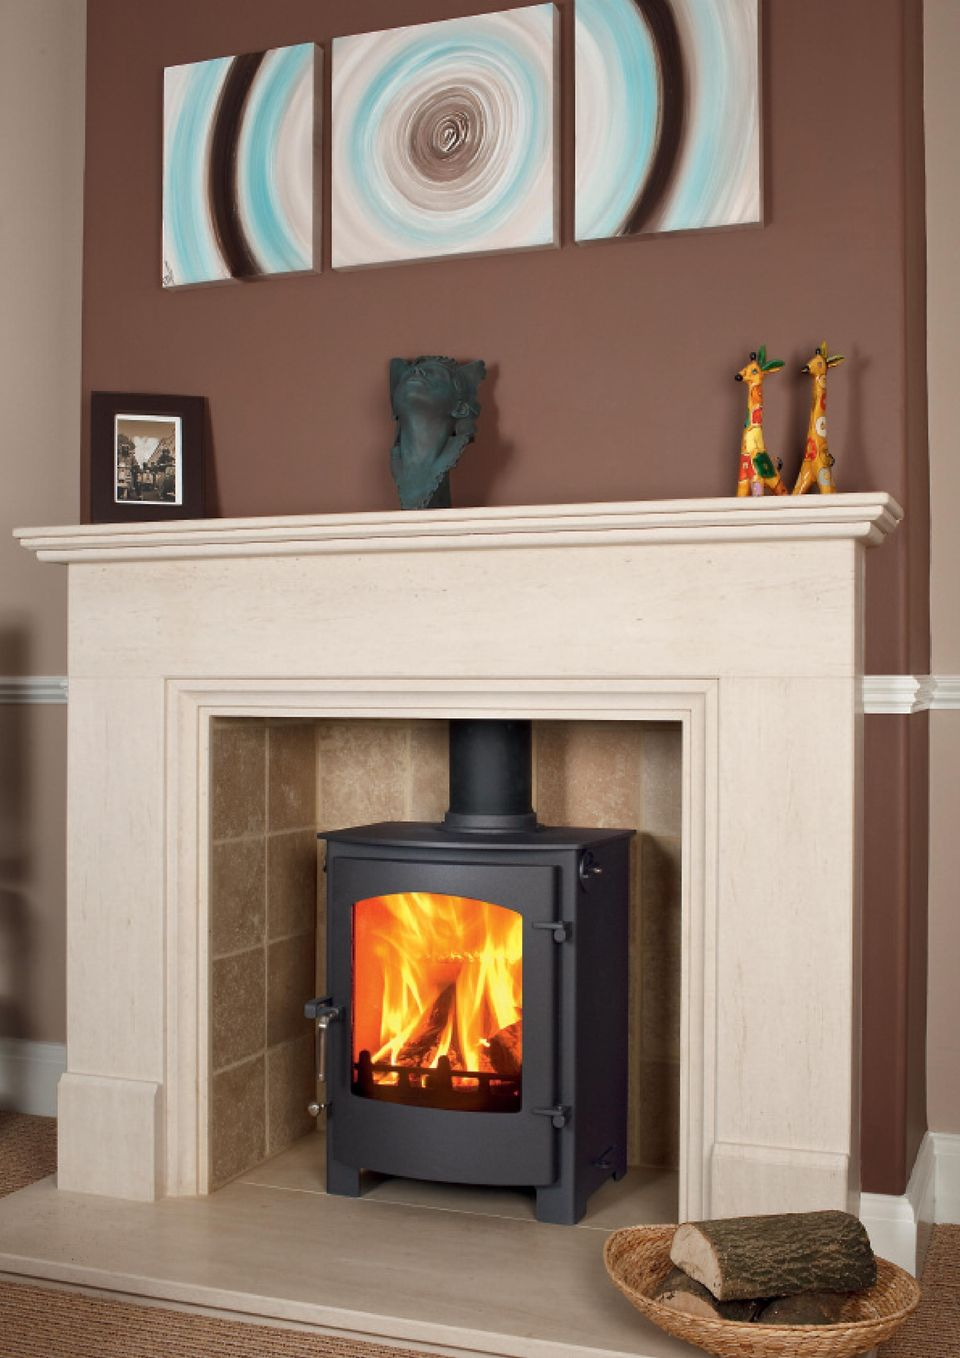 Efficient Stoves That Won T Cost The Earth Pdf Rocket Stove Diagram Oven Fireplace Earthen Pint 3 Contents Farndale Page 6 Ryedale 7 Little Thurlow Pages 8 9 Dalby 10 11 Whisperdale 12 Bransdale 13 Thornton Dale 14 15